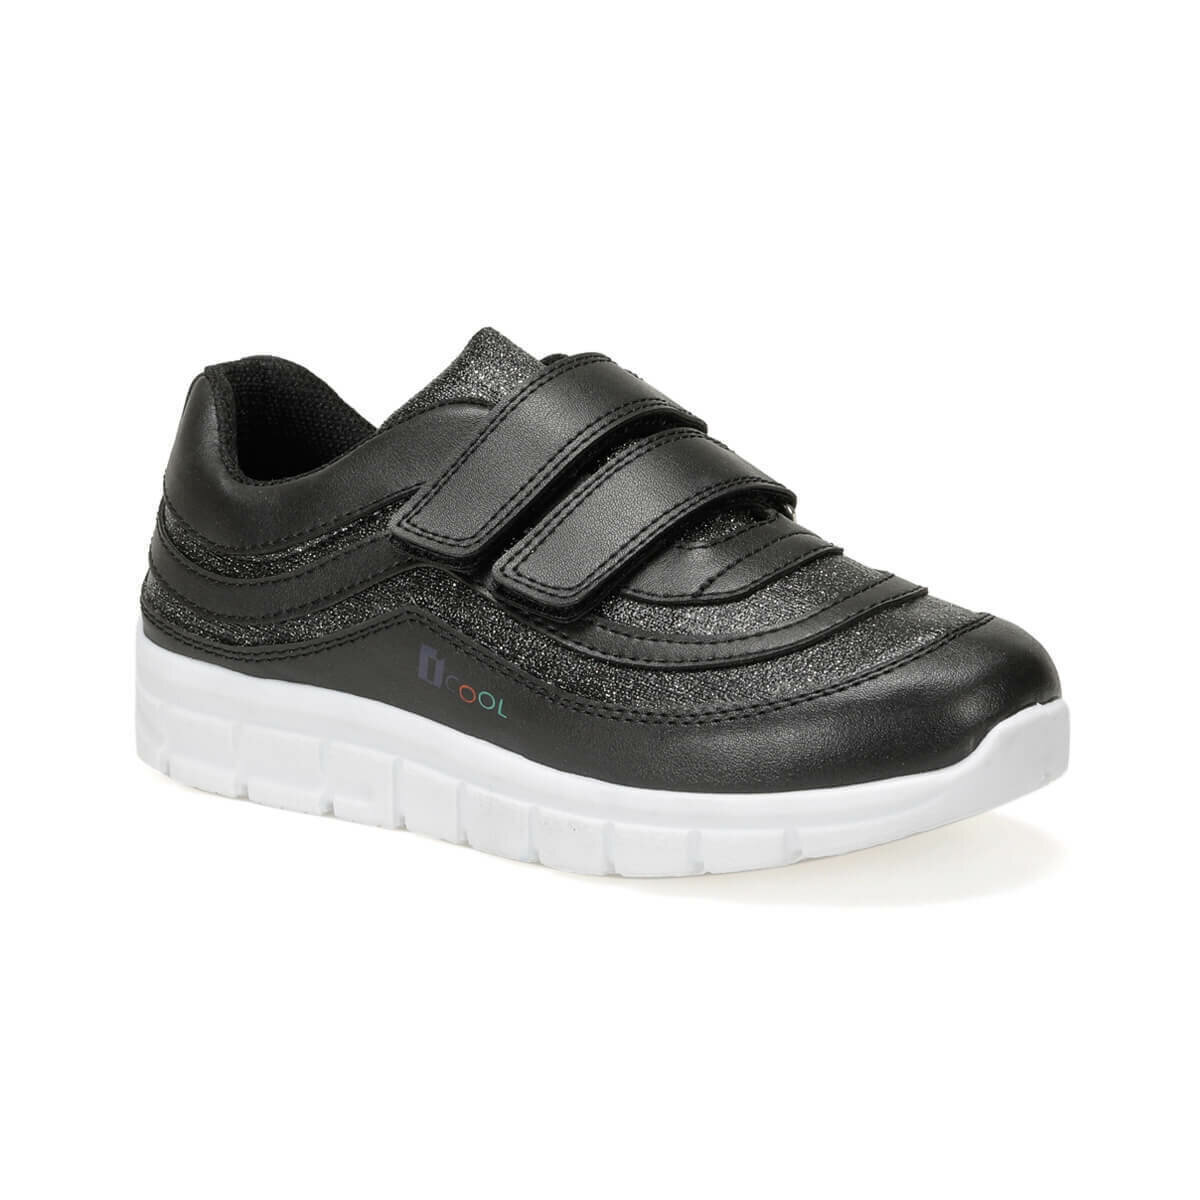 FLO PASSION Black Female Child Shoes I-Cool